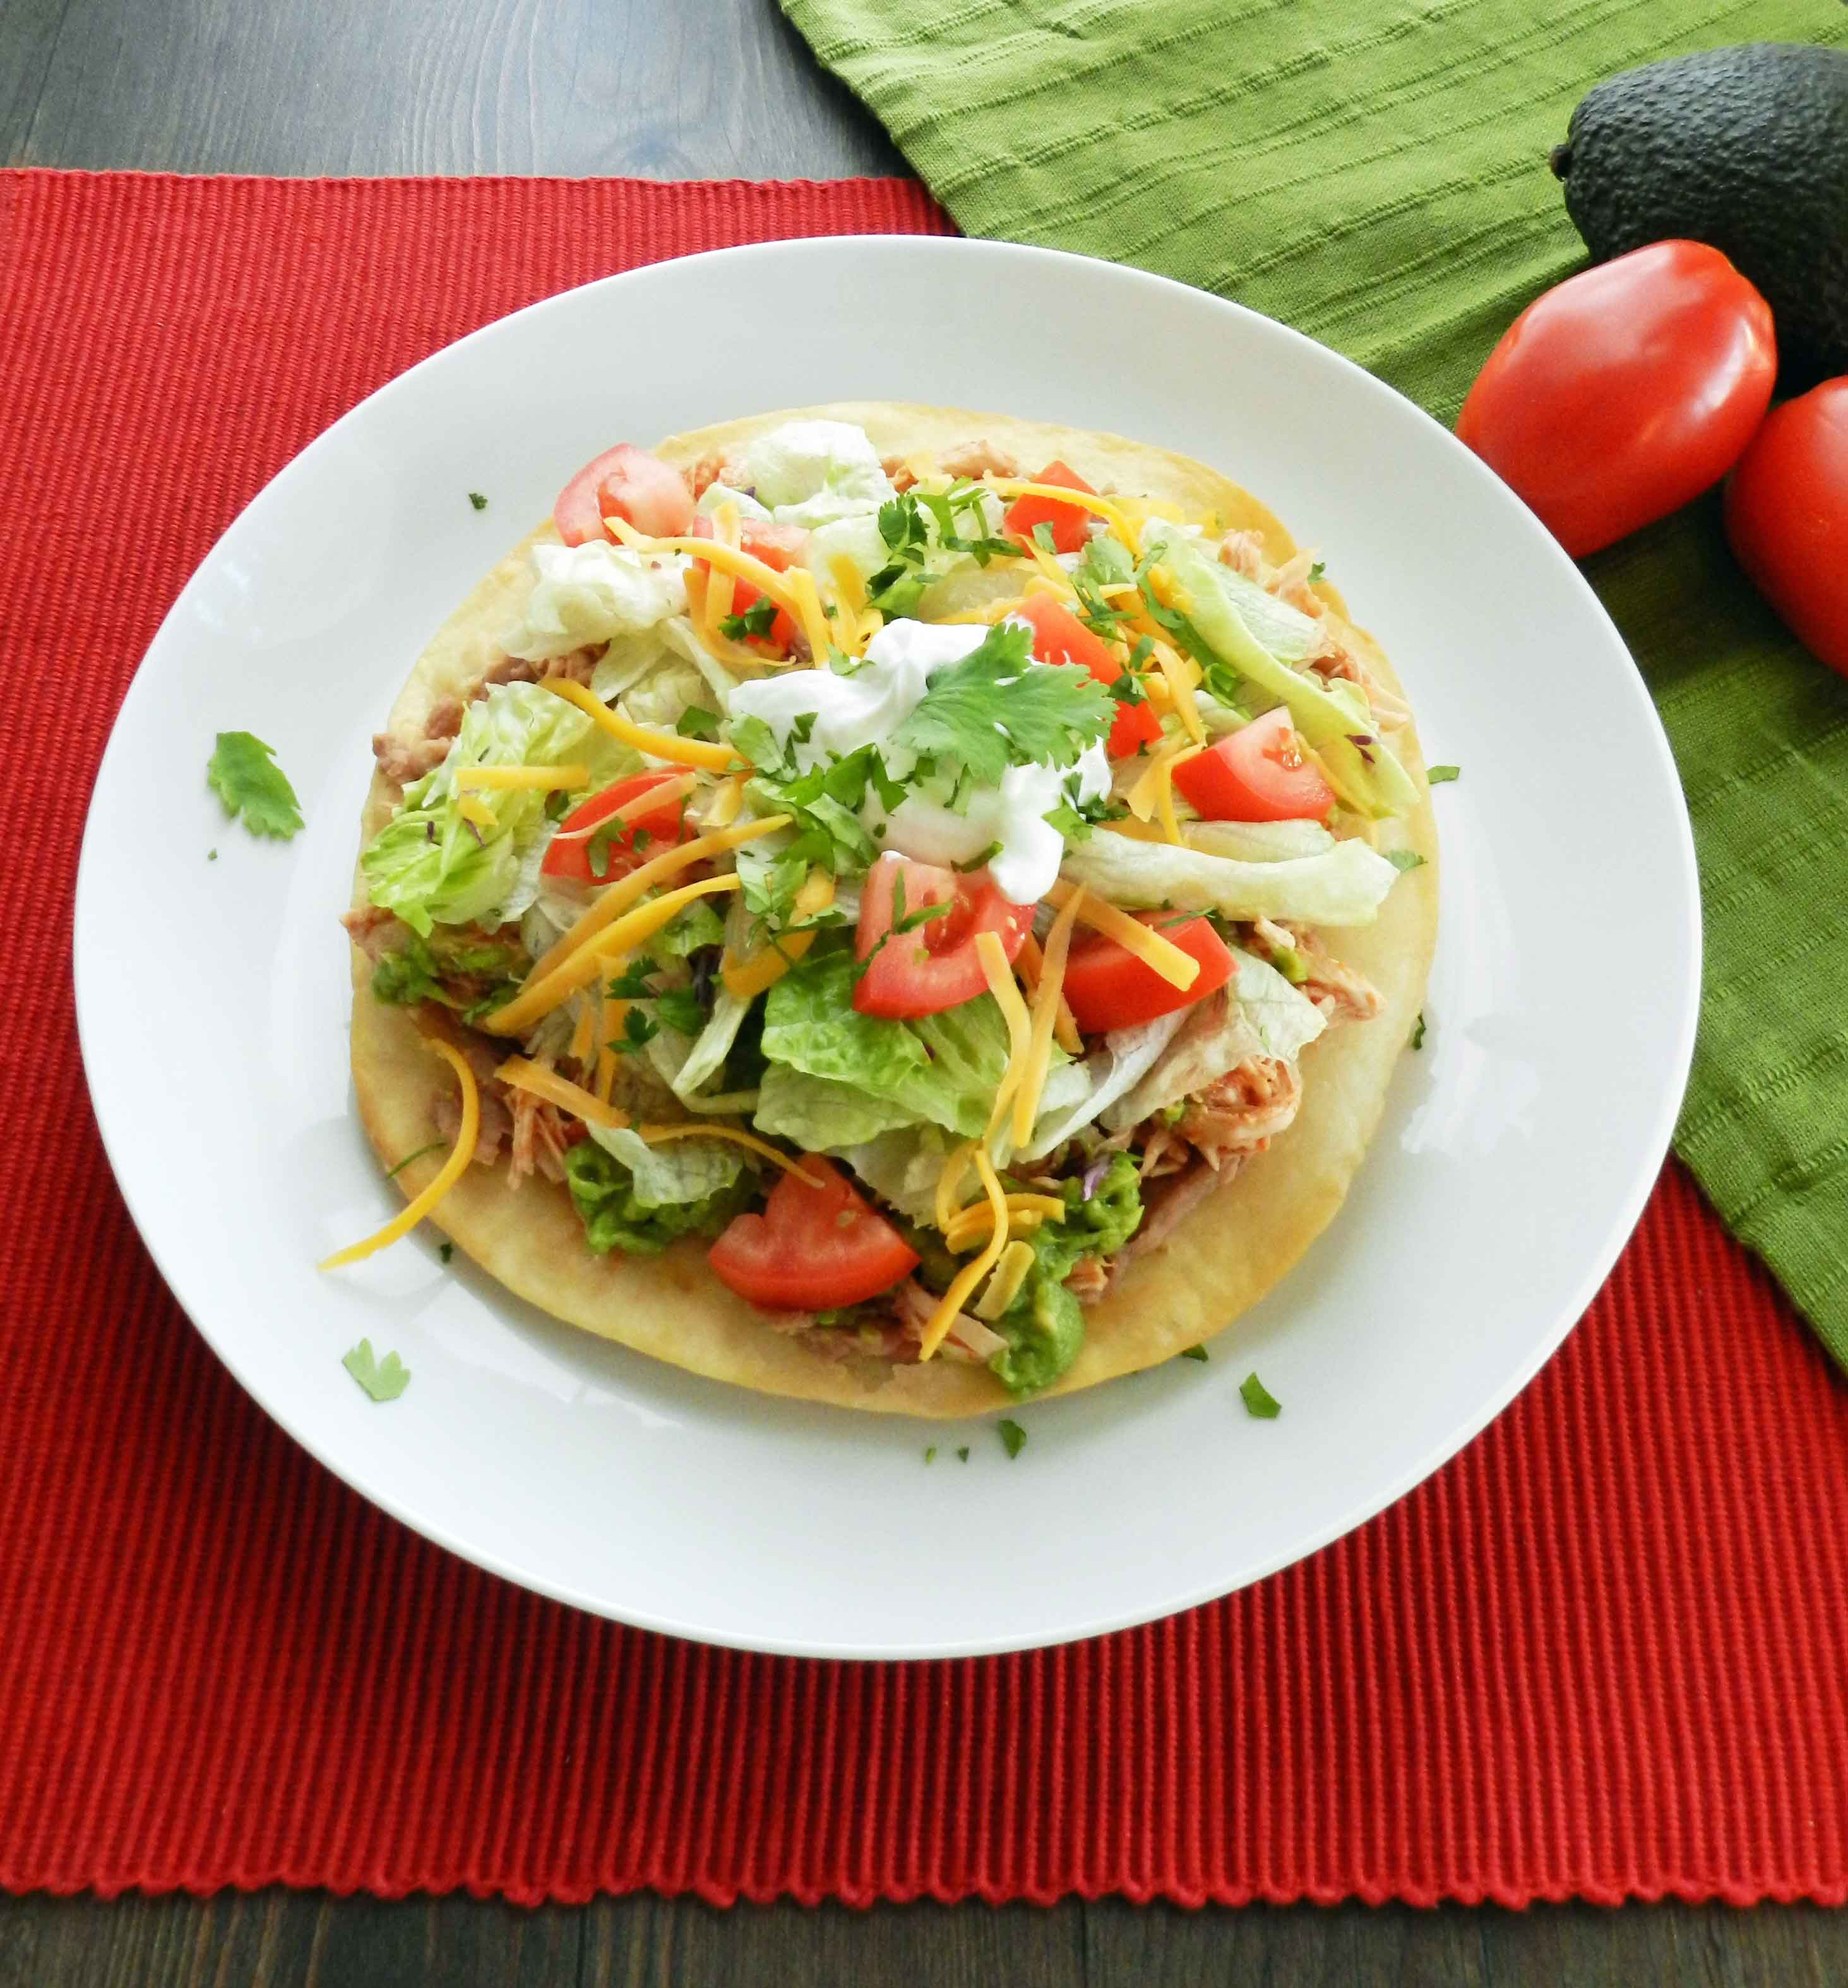 Delicious Chicken Tostados – A Great Weeknight Meal